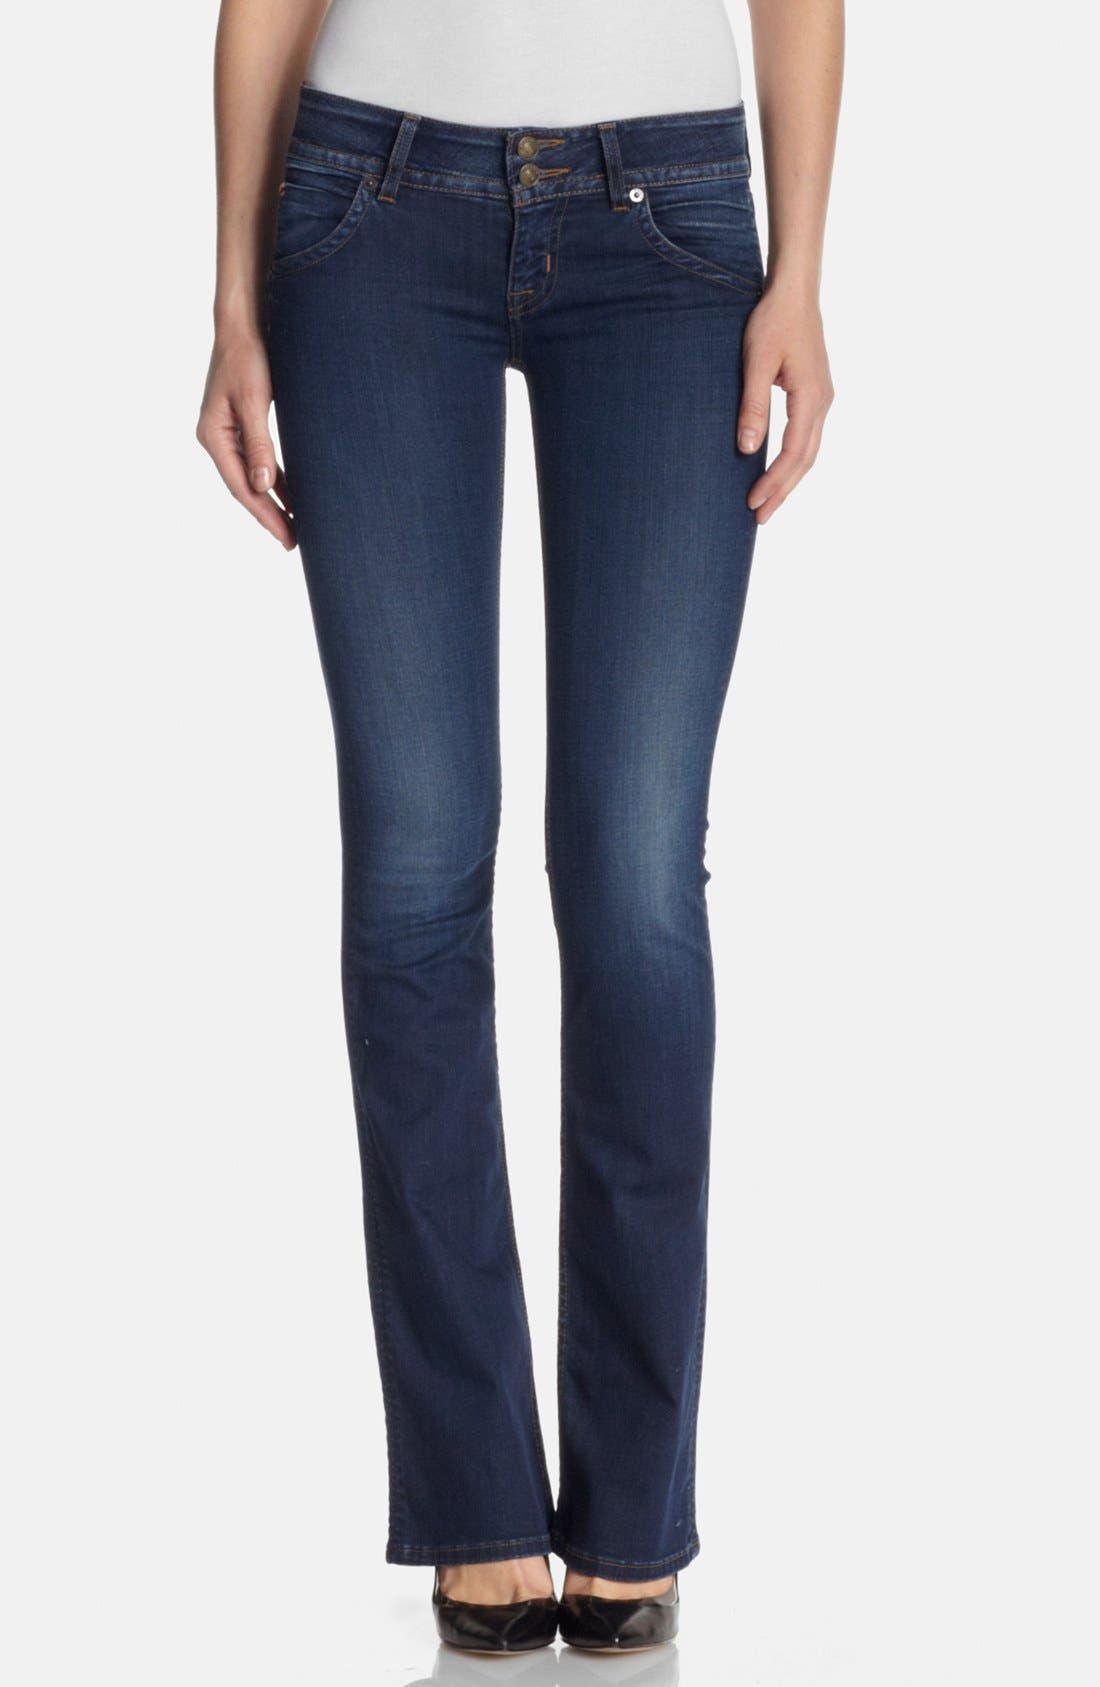 Alternate Image 1 Selected - Hudson Jeans Signature Bootcut Jeans (Limelight)